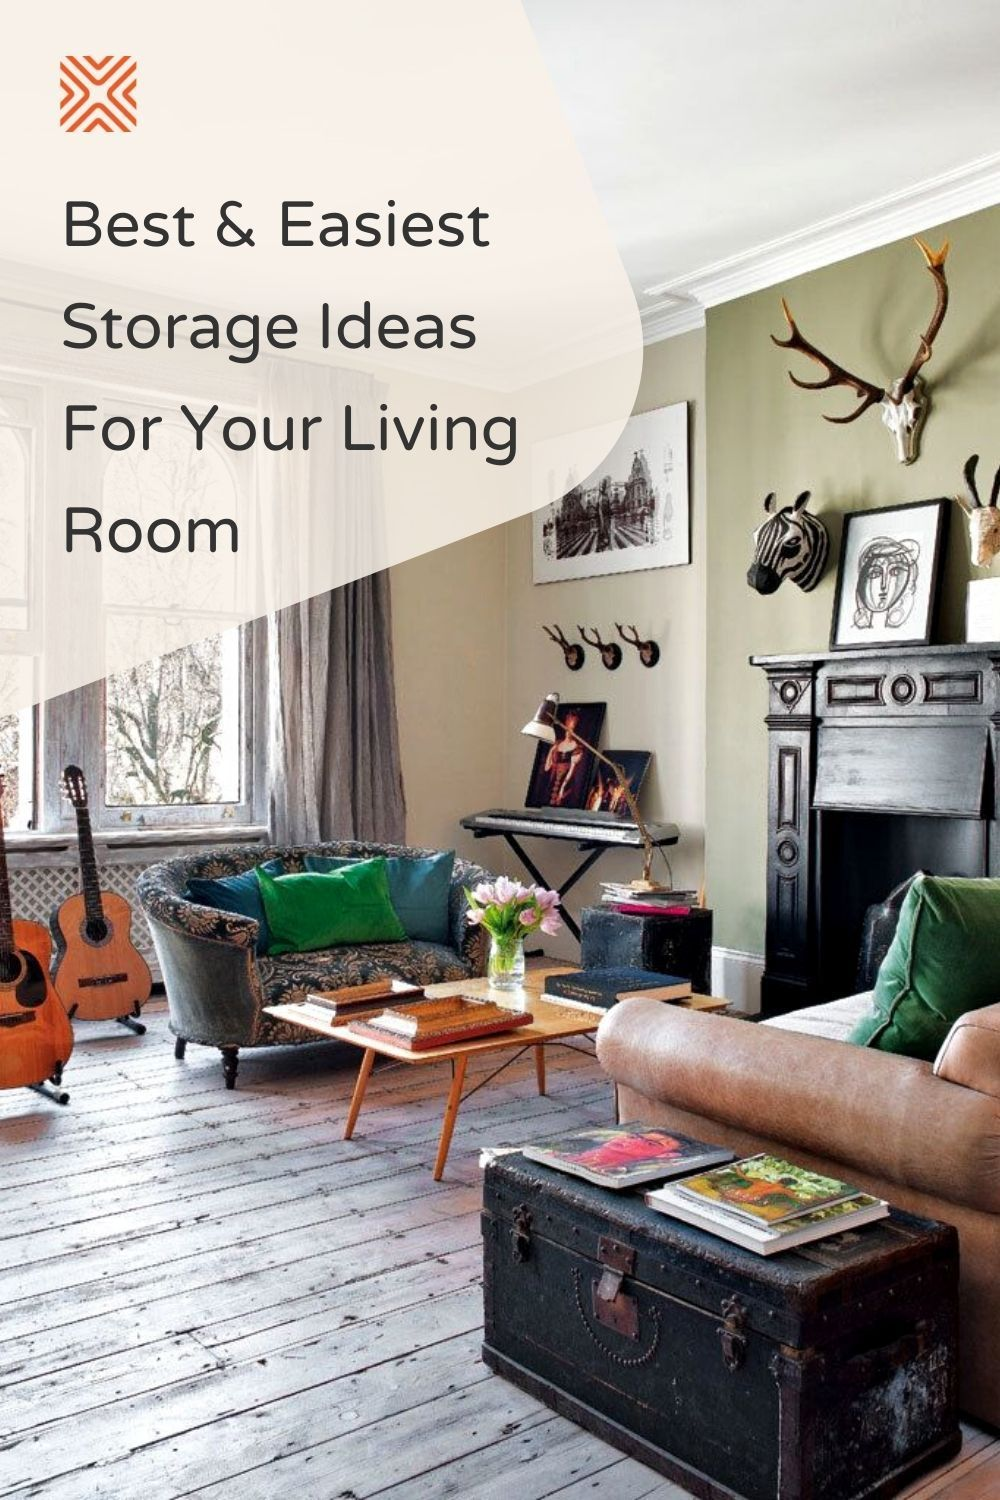 7 Clever Living Room Storage Ideas For Your Home In 2020 Li